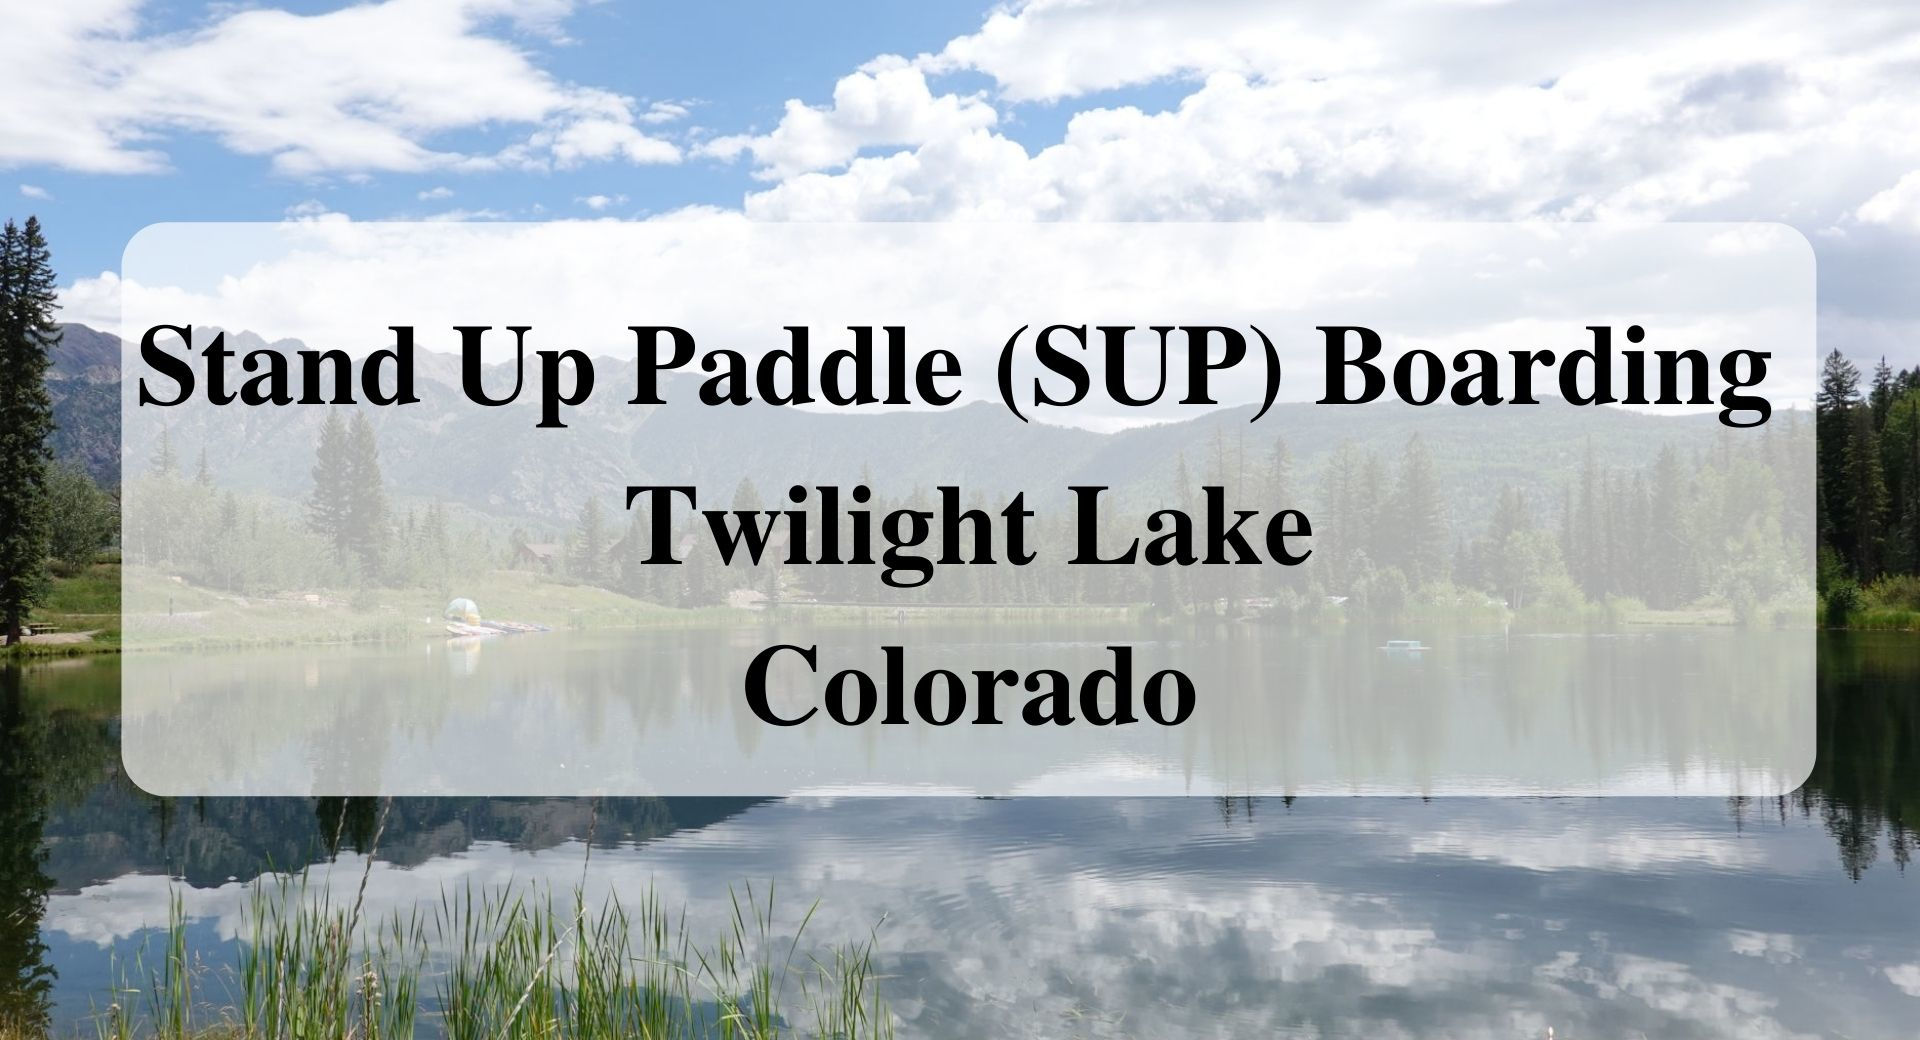 Stand Up Paddle (SUP) Boarding Twilight Lake Colorado forever sabbatical